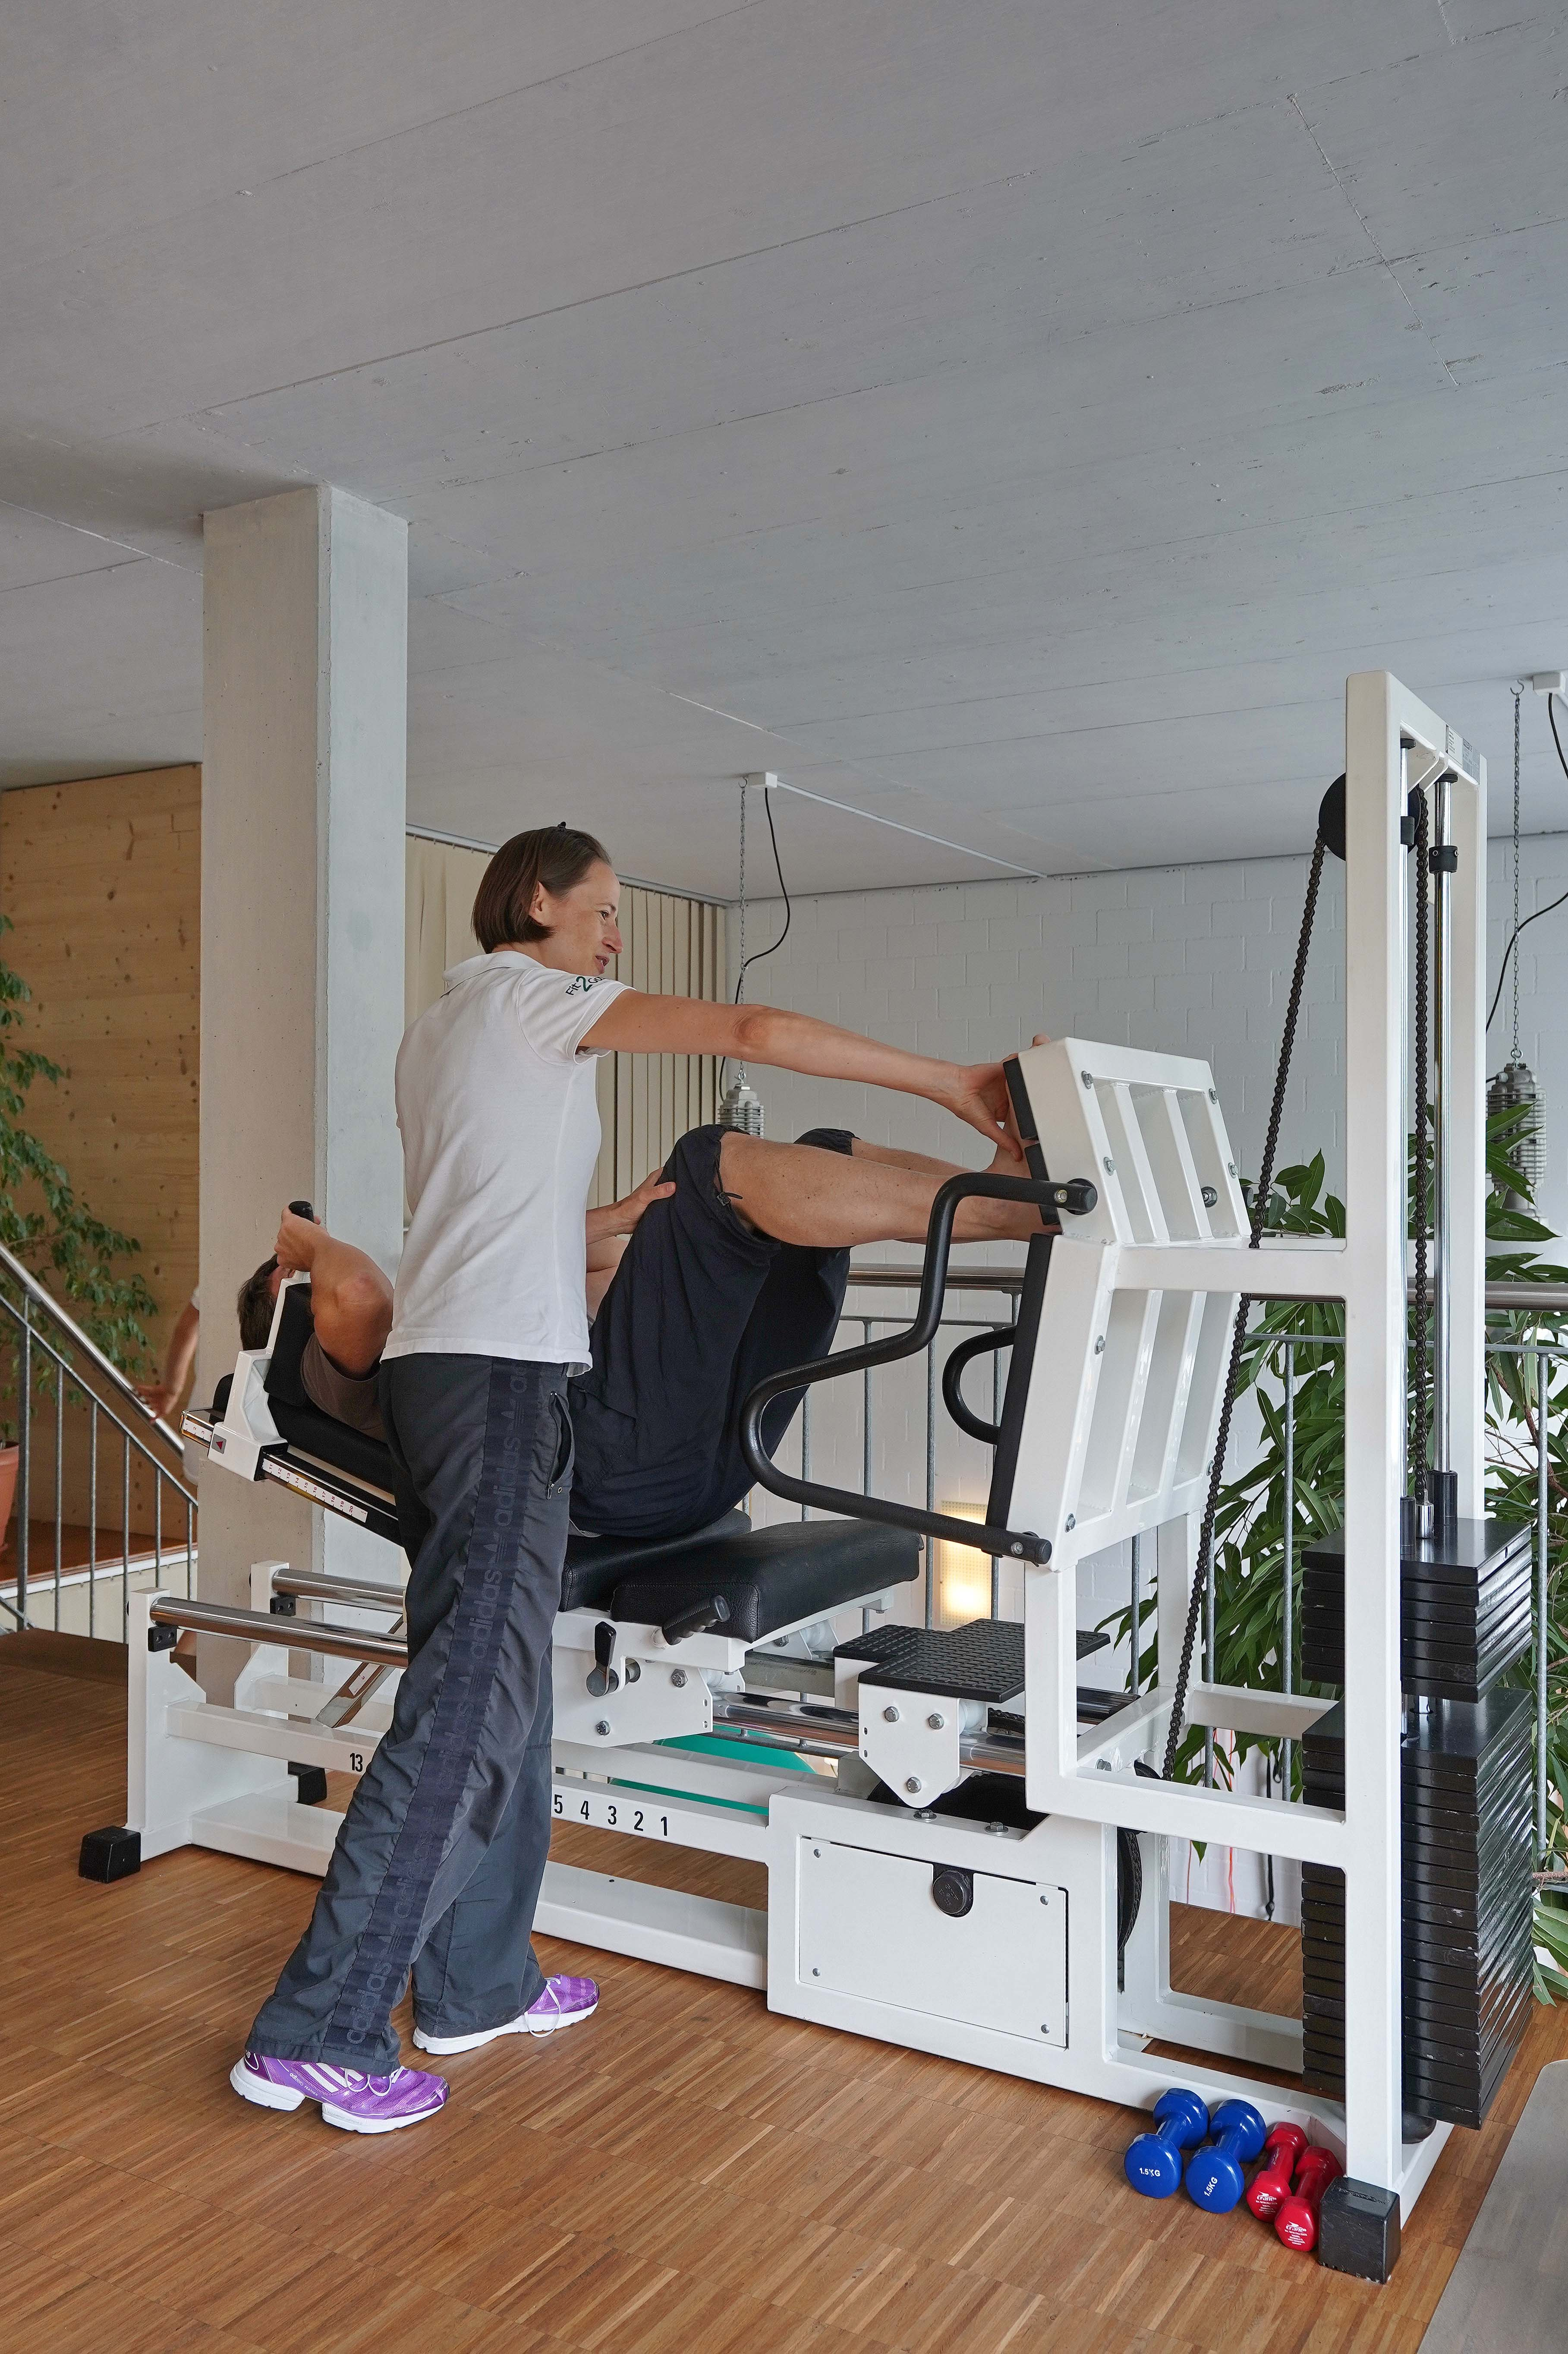 Gesundheit, Training, Coaching - Fit2Go Center in Uster 18